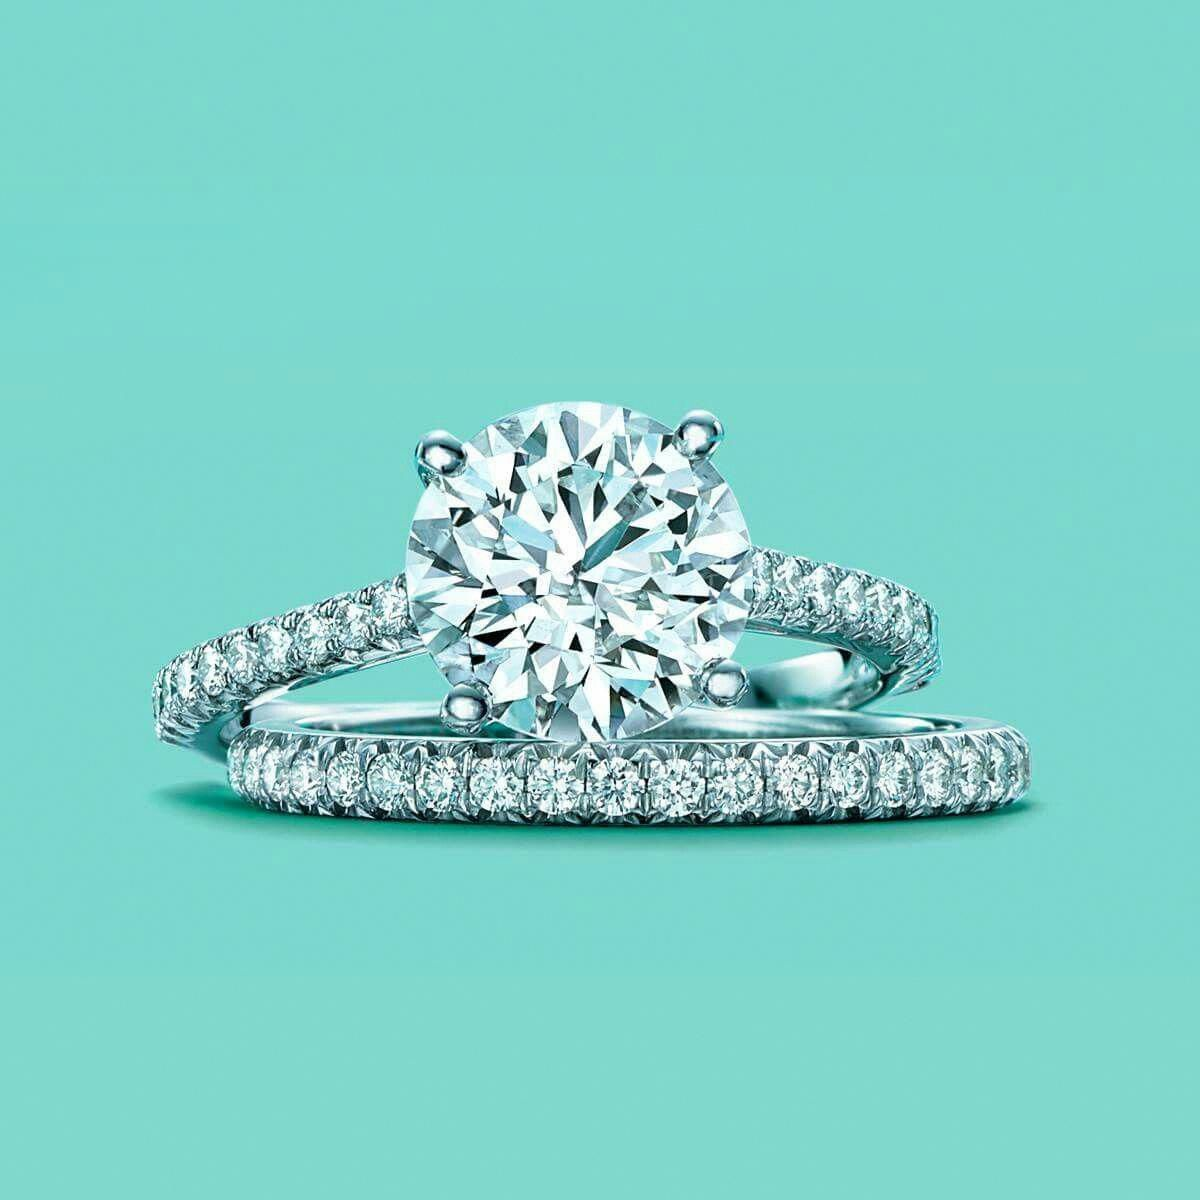 Most beautiful round engagement rings 1302